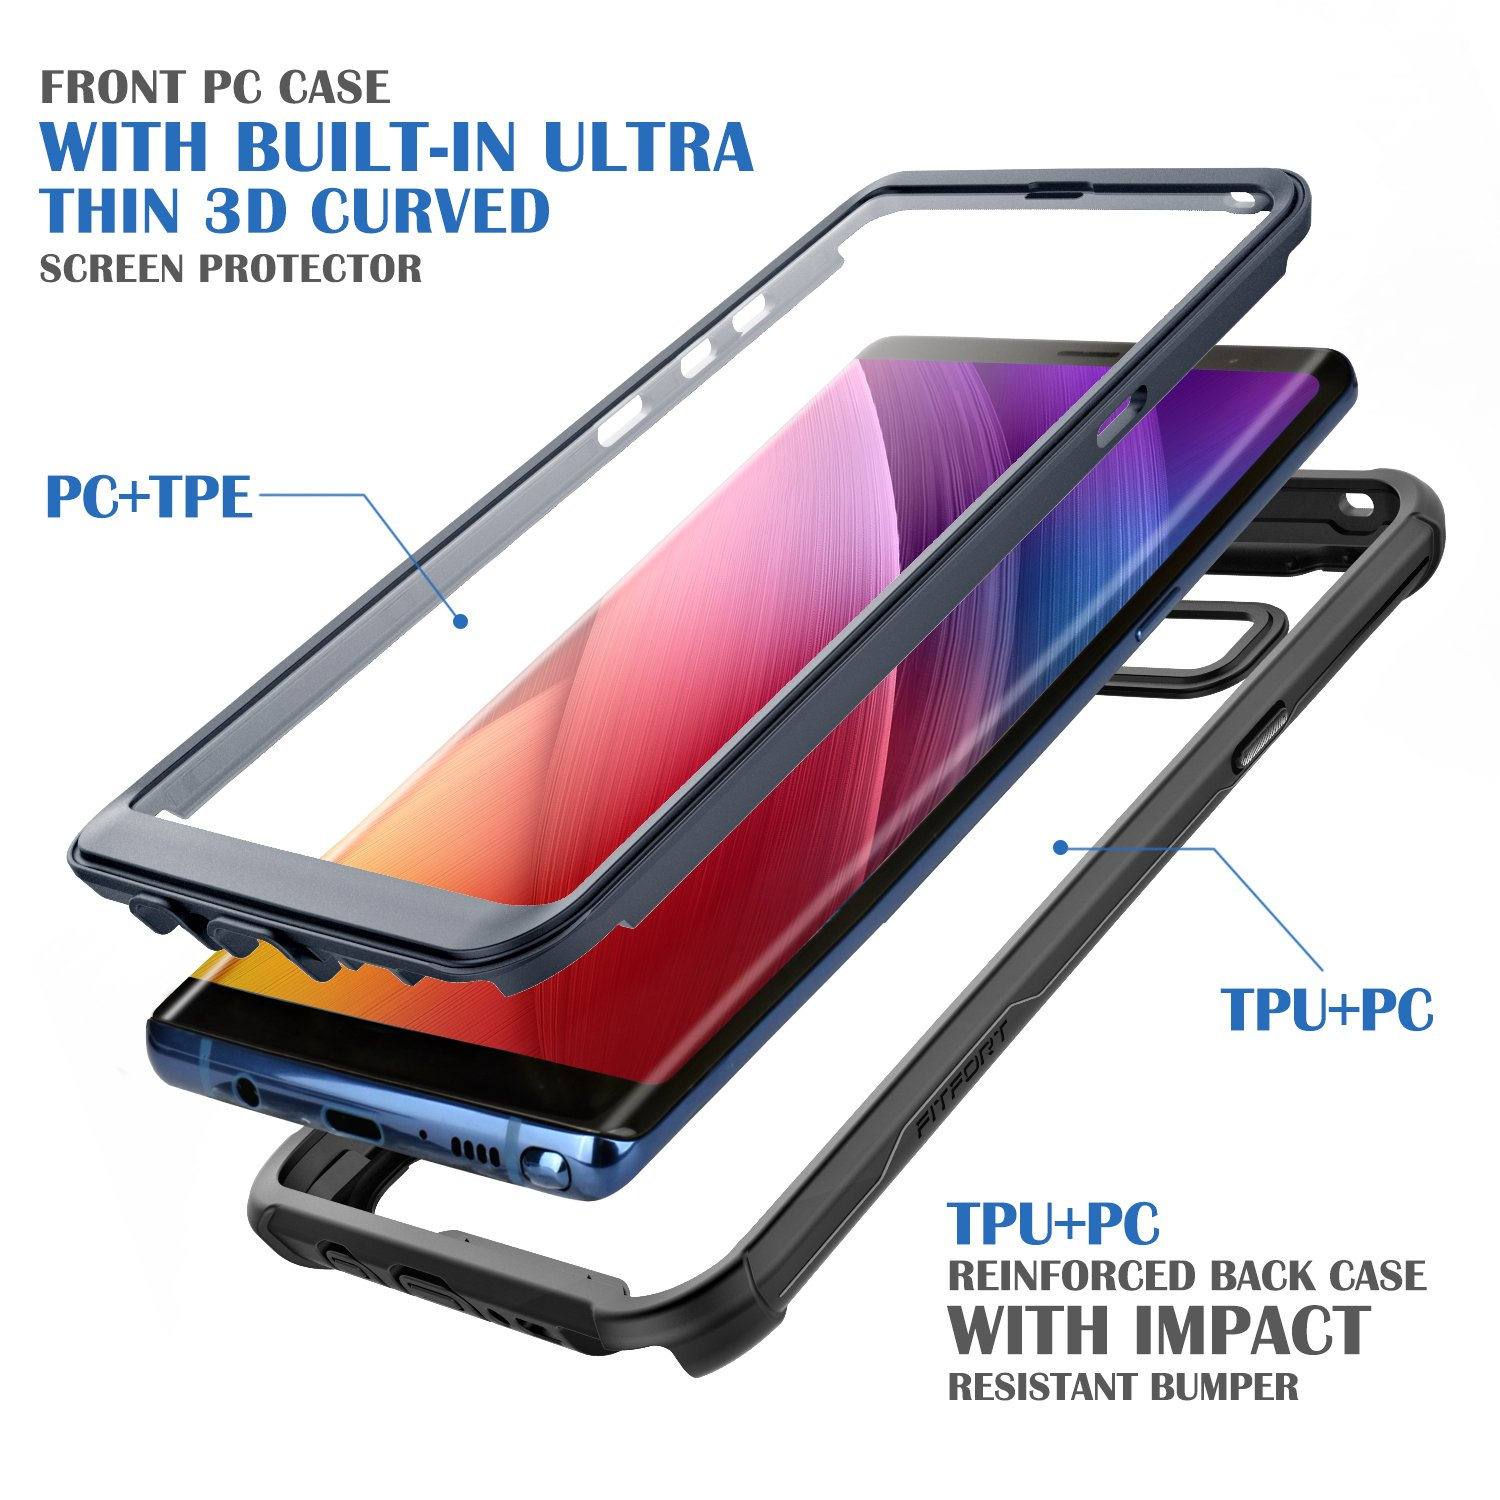 Ultra Thin Clear Cover with Built-in Anti-Scratch Screen Protector Samsung Galaxy Note 8 Cell Phone Case Full Body Protective Shock Drop Proof Impact Resist Extreme Durable Case Black//Grey